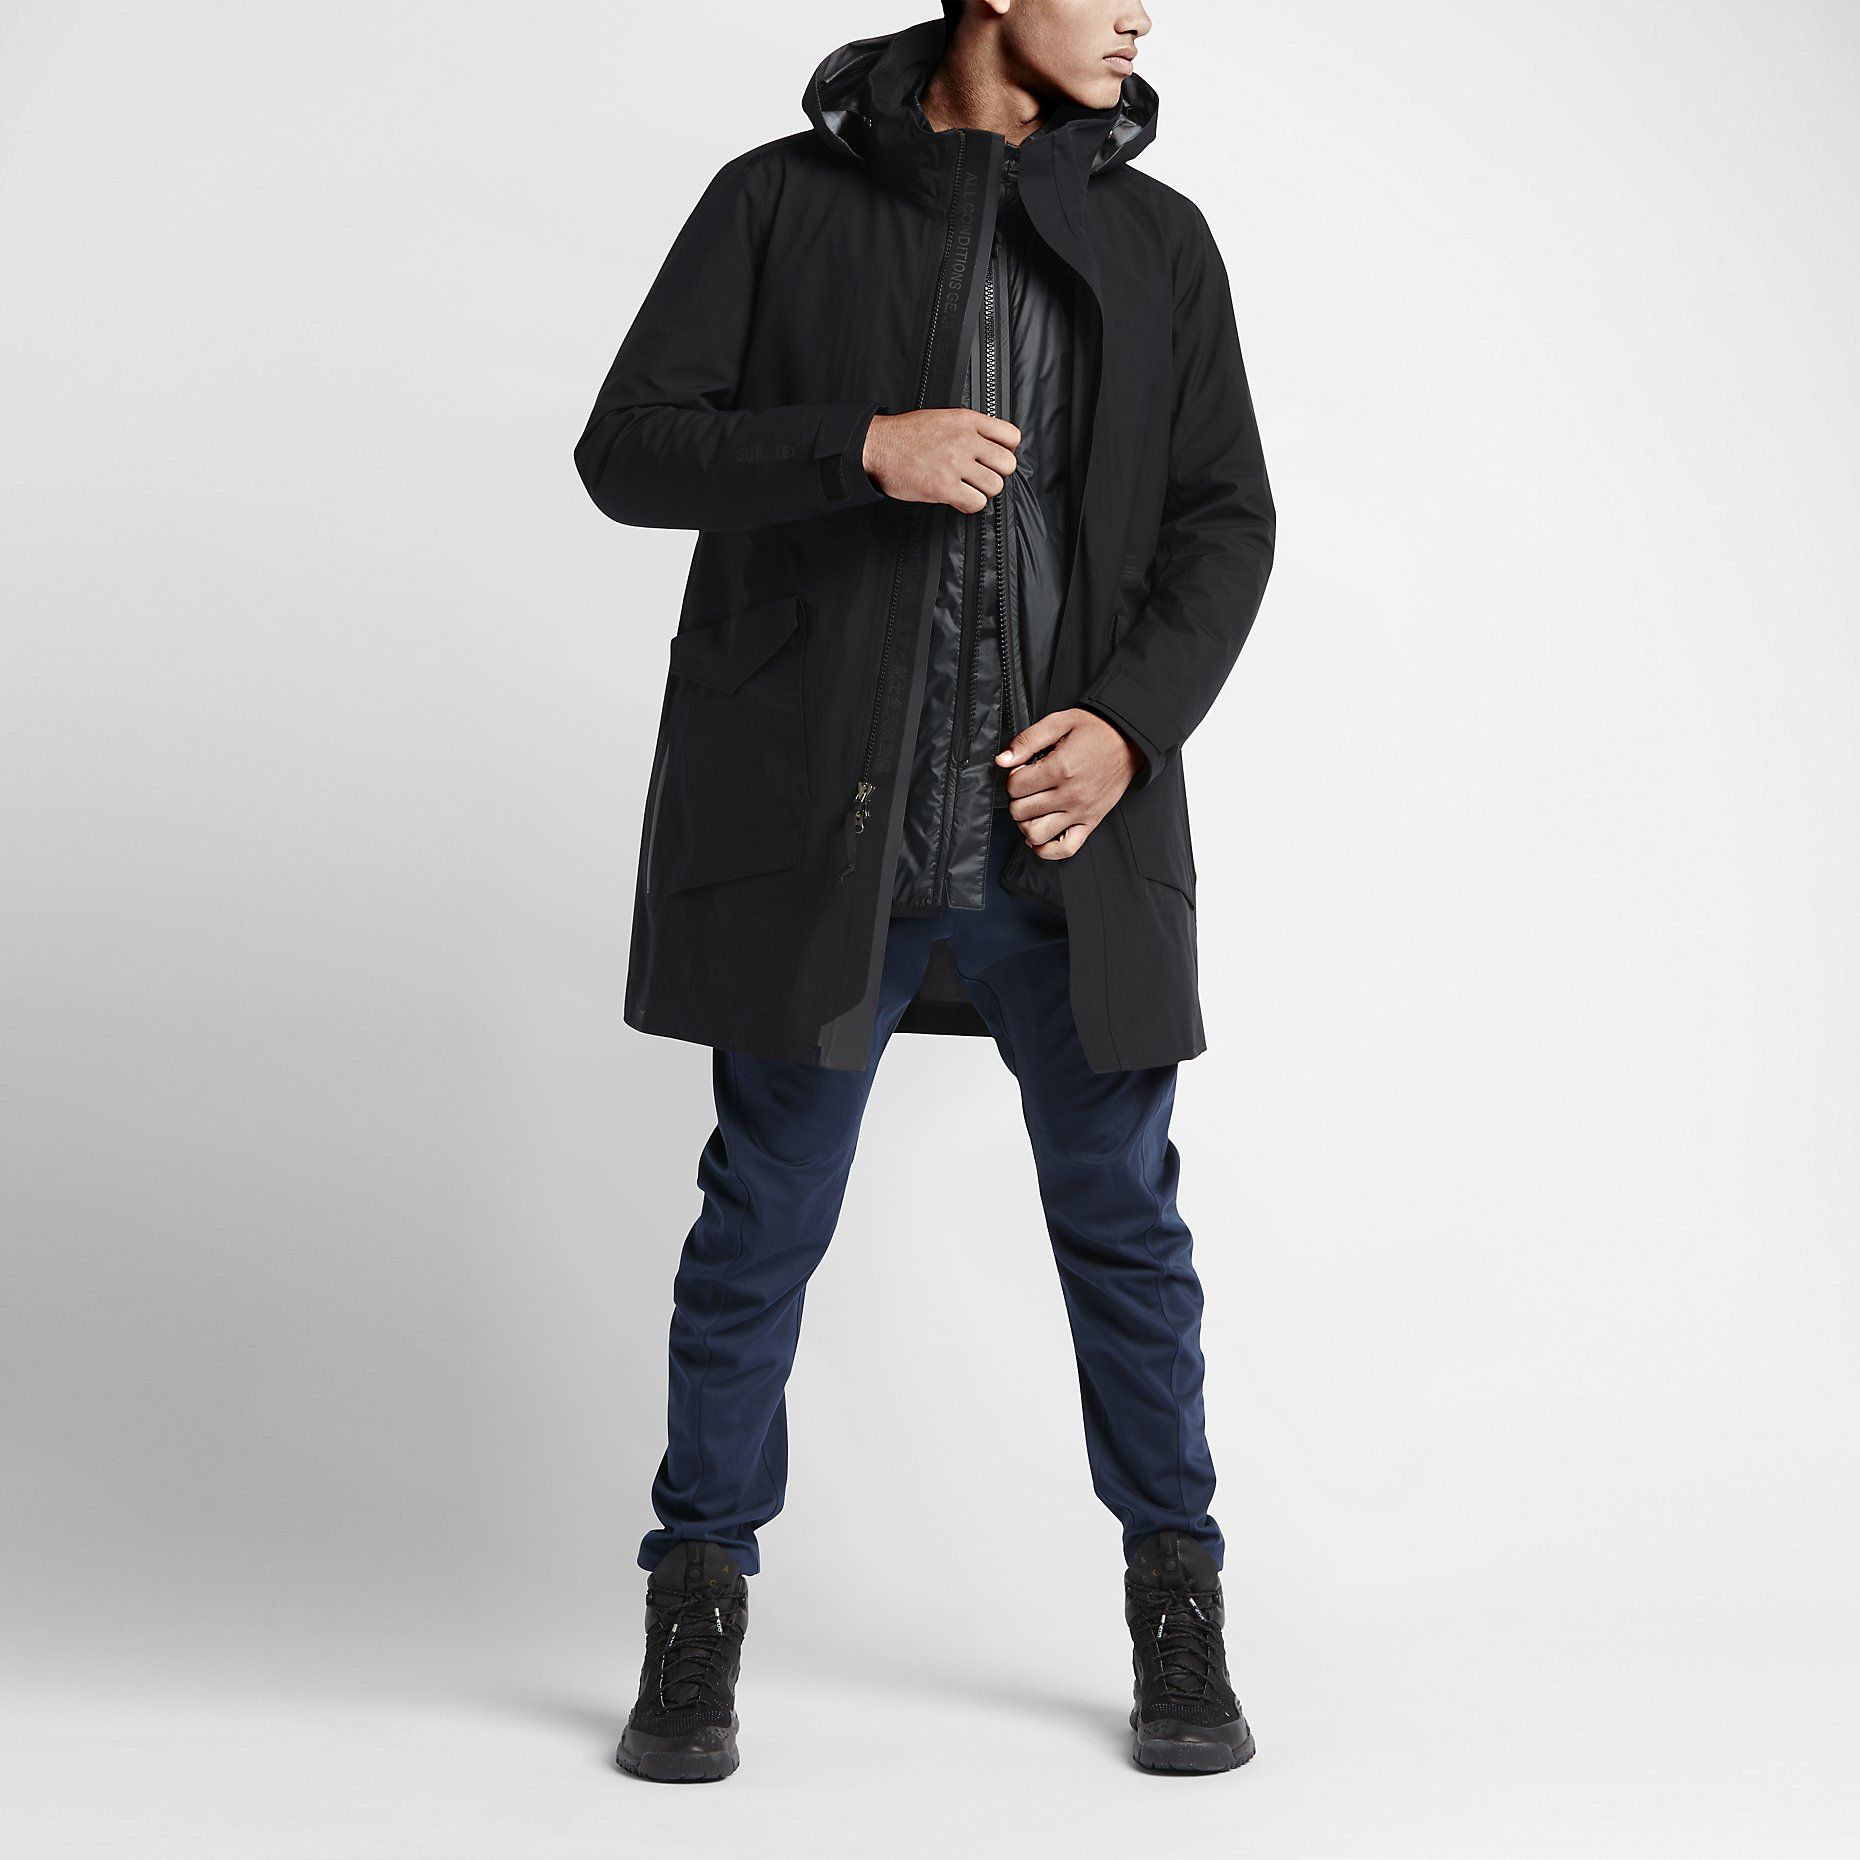 NIKELAB ACG SYSTEM TRENCH | Long bomber jacket, Outdoor